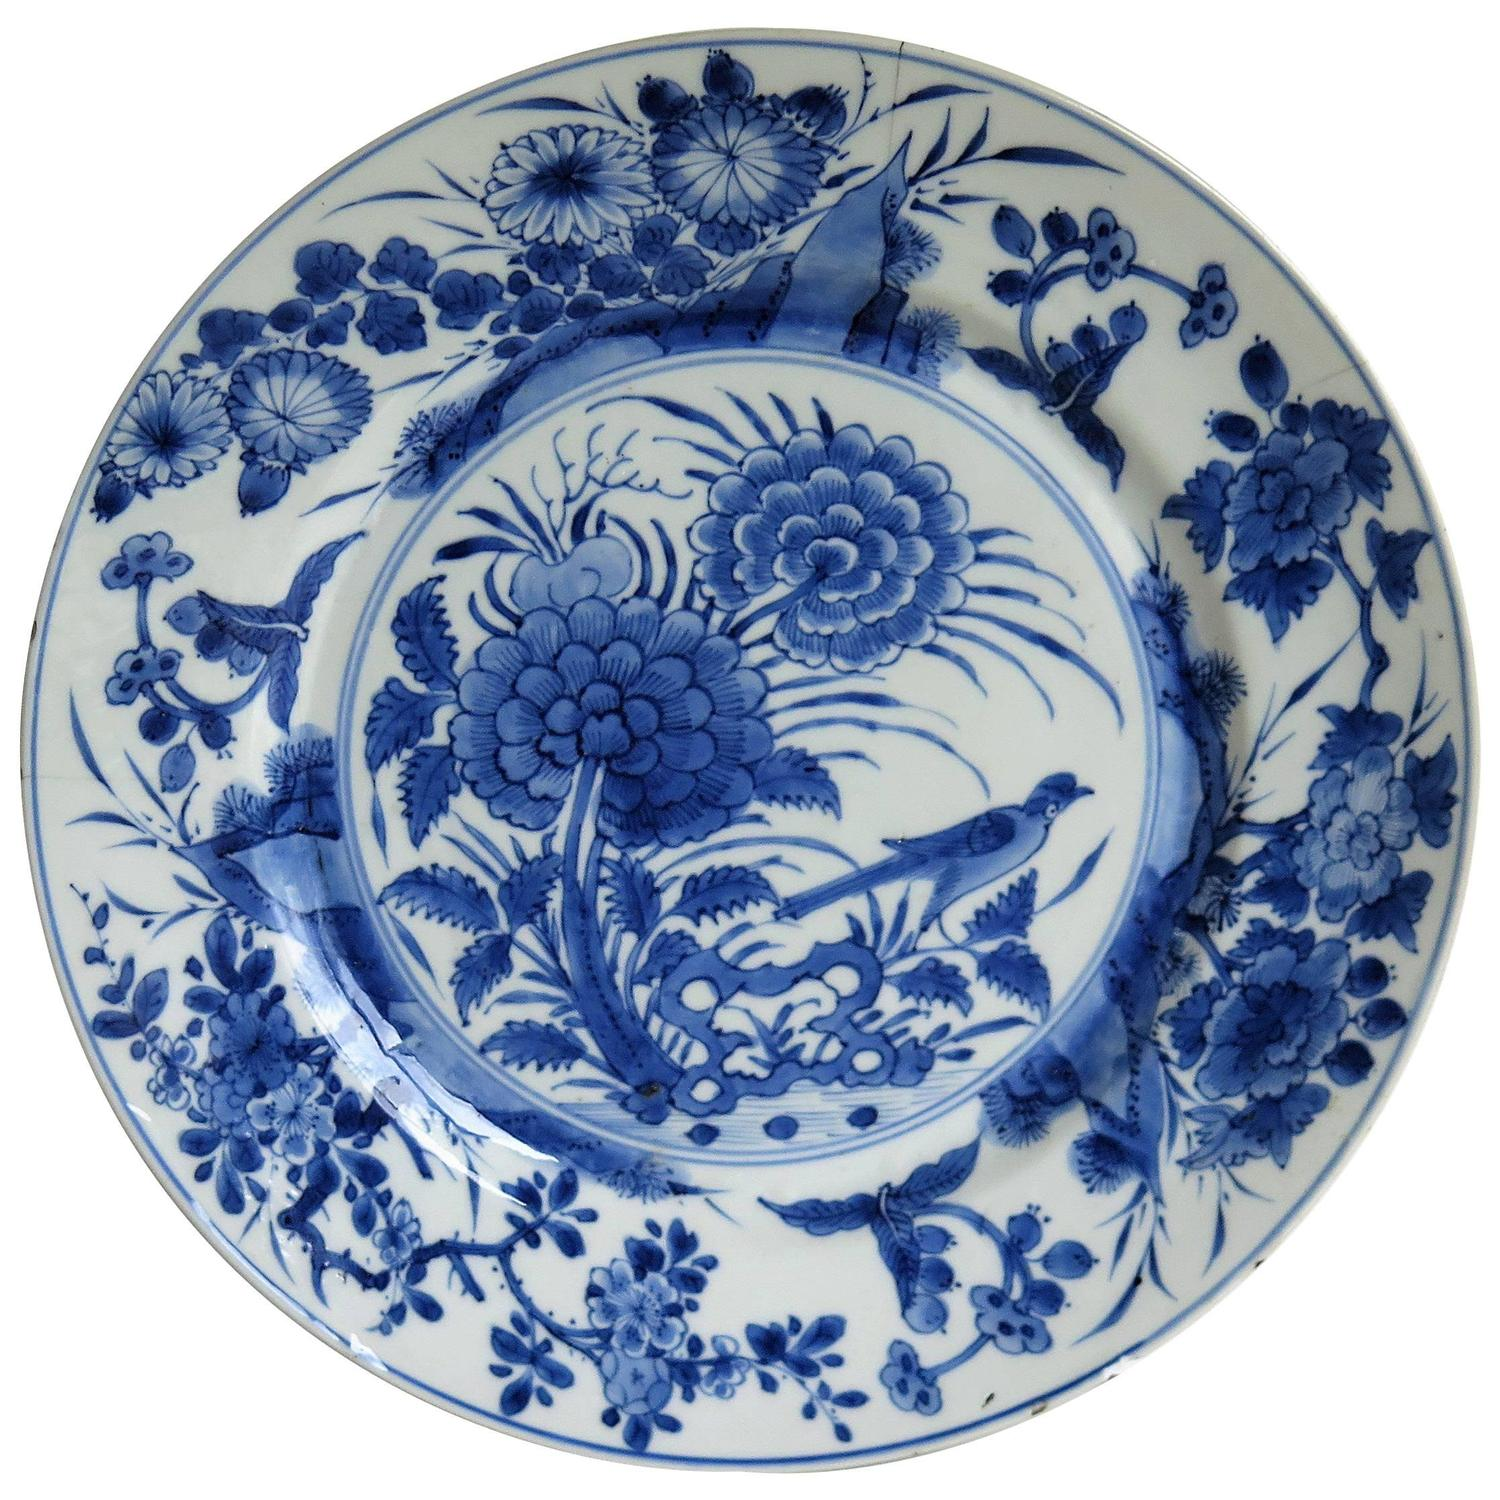 Chinese Porcelain Plate Blue And White Kangxi Period Mark Circa 1700 At 1stdibs